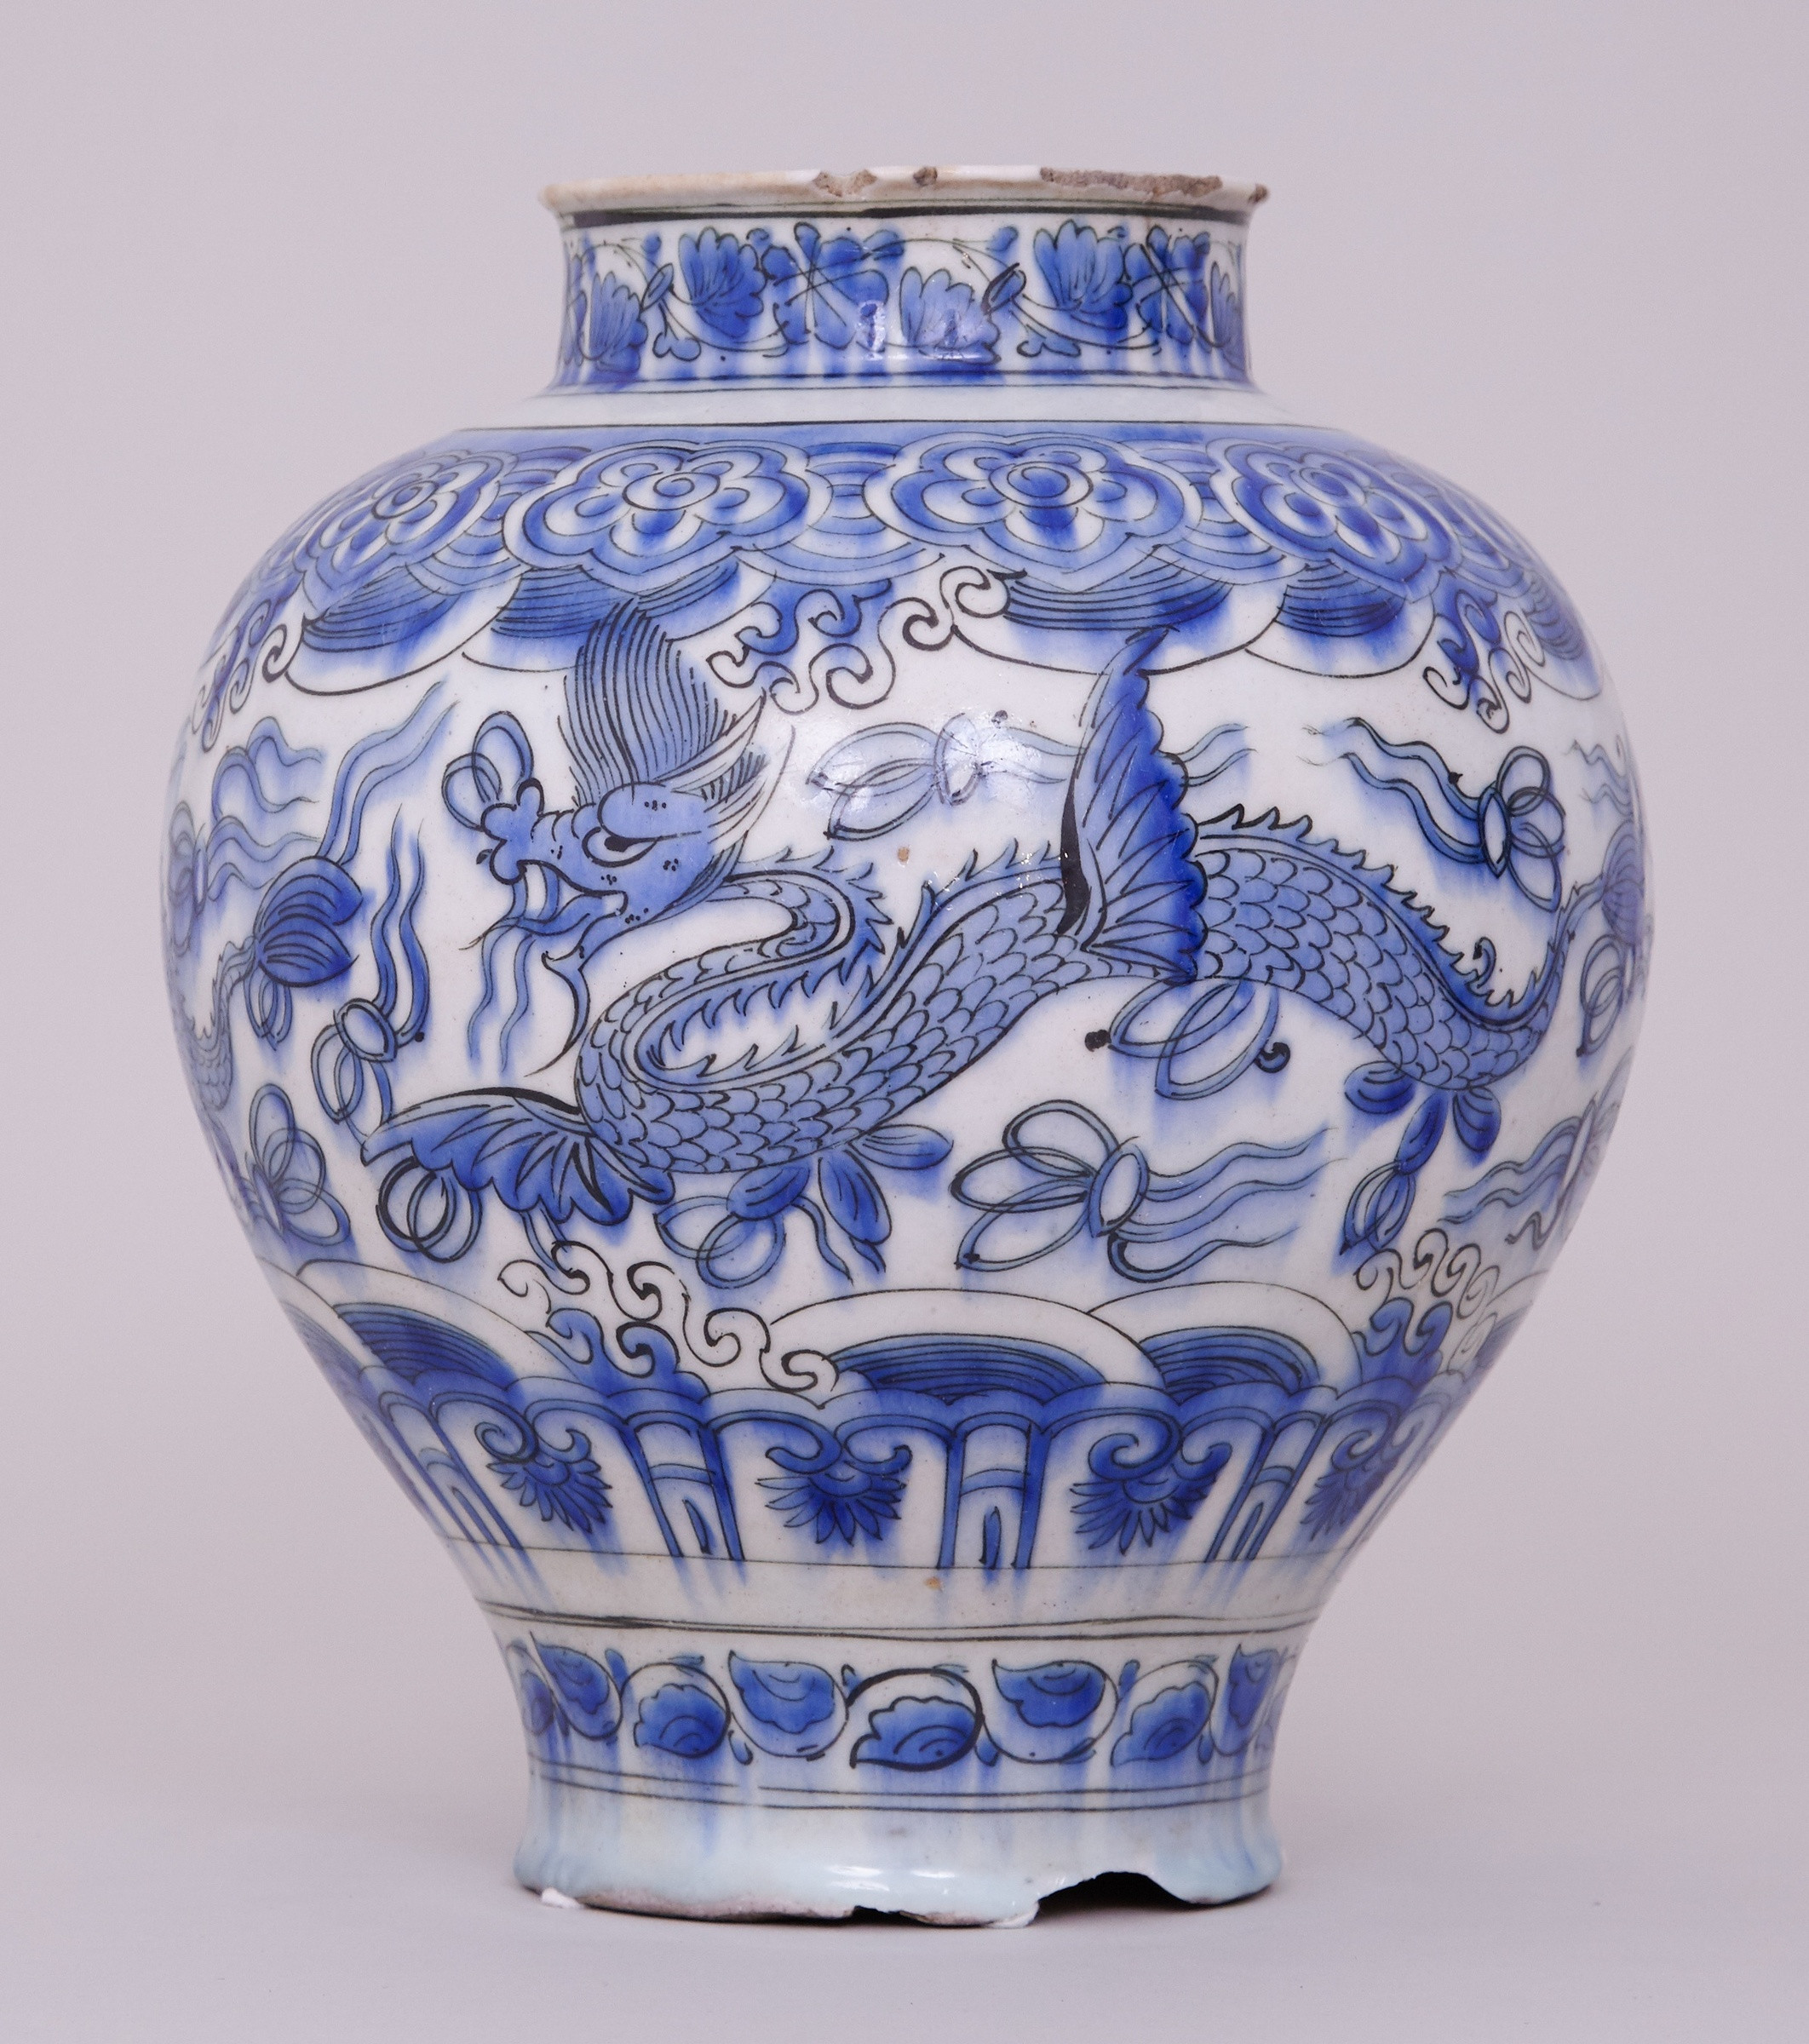 chinese dragon vase of a blue and white persian safavid jar 17th century anita gray with regard to a blue and white persian safavid jar